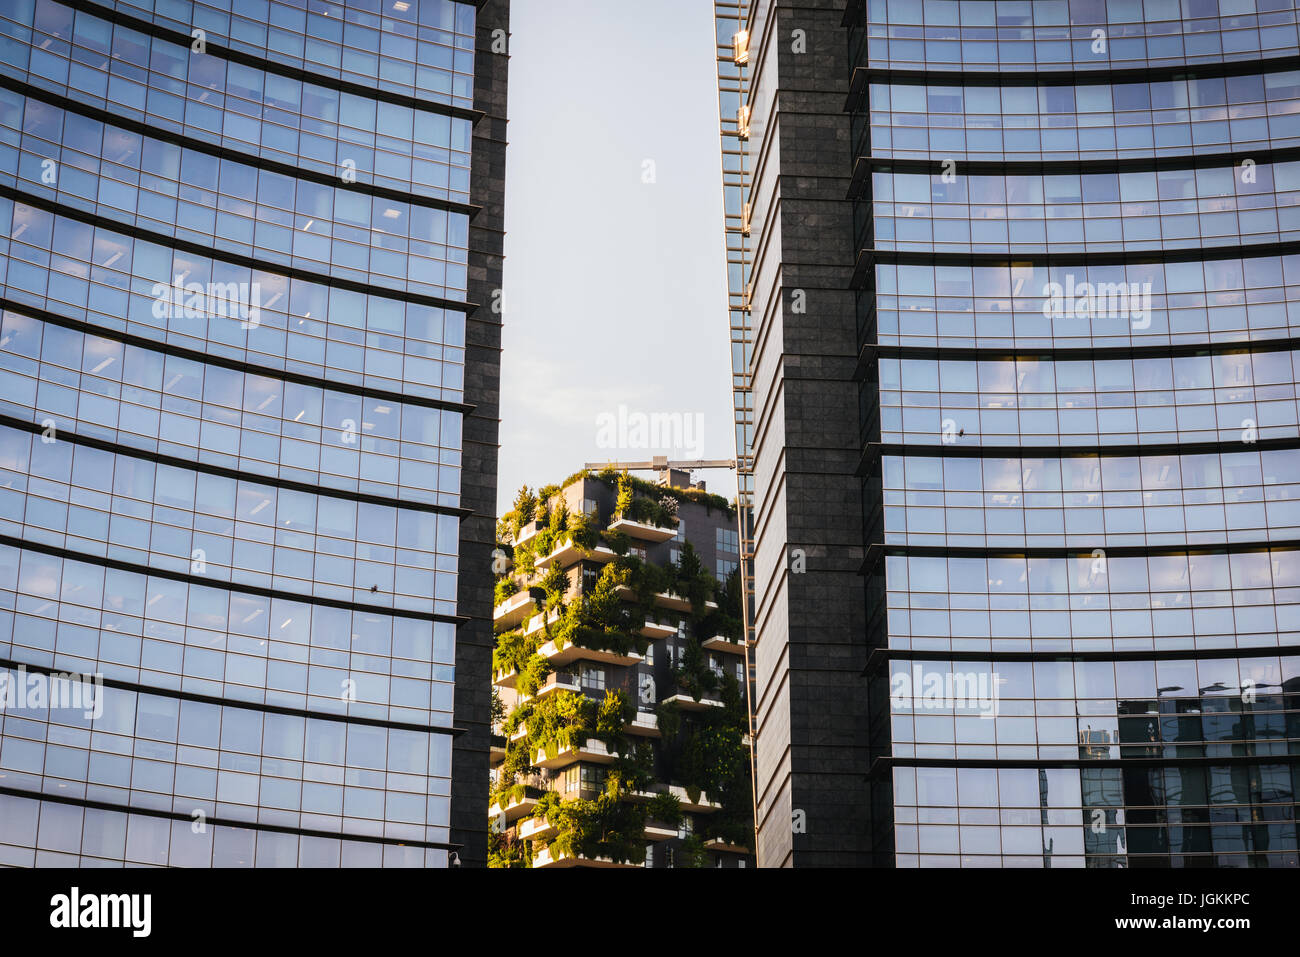 Bosco Verticale, vertical forest building, Porta nuova district, Milan, Lombardy, Italy, Europe Stock Photo